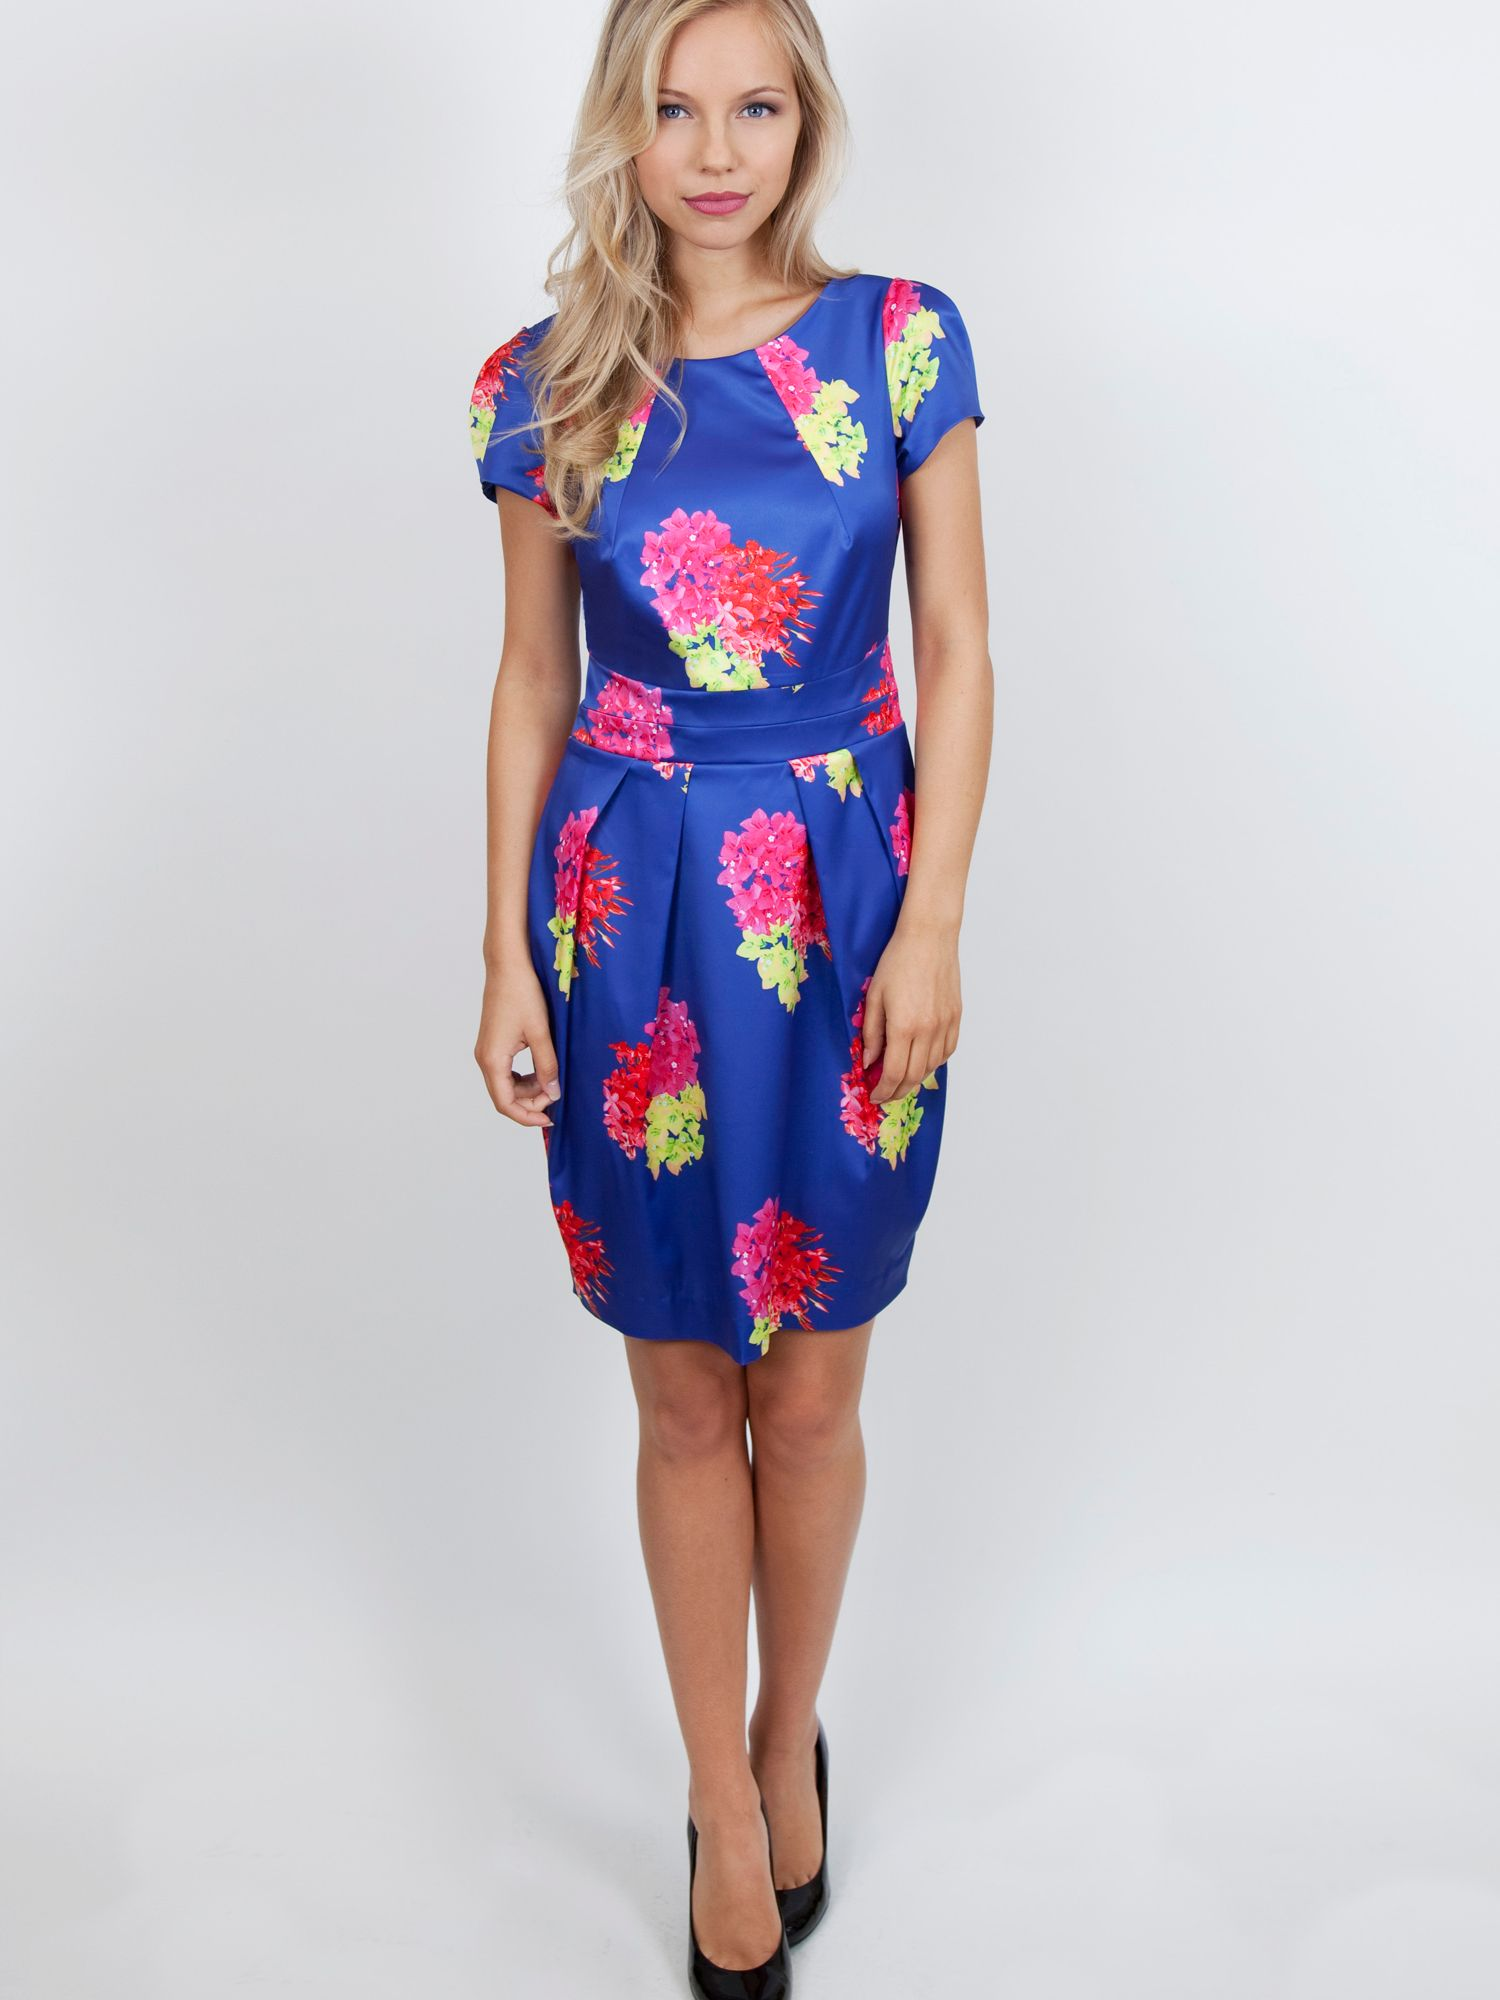 Electric neon floral dress